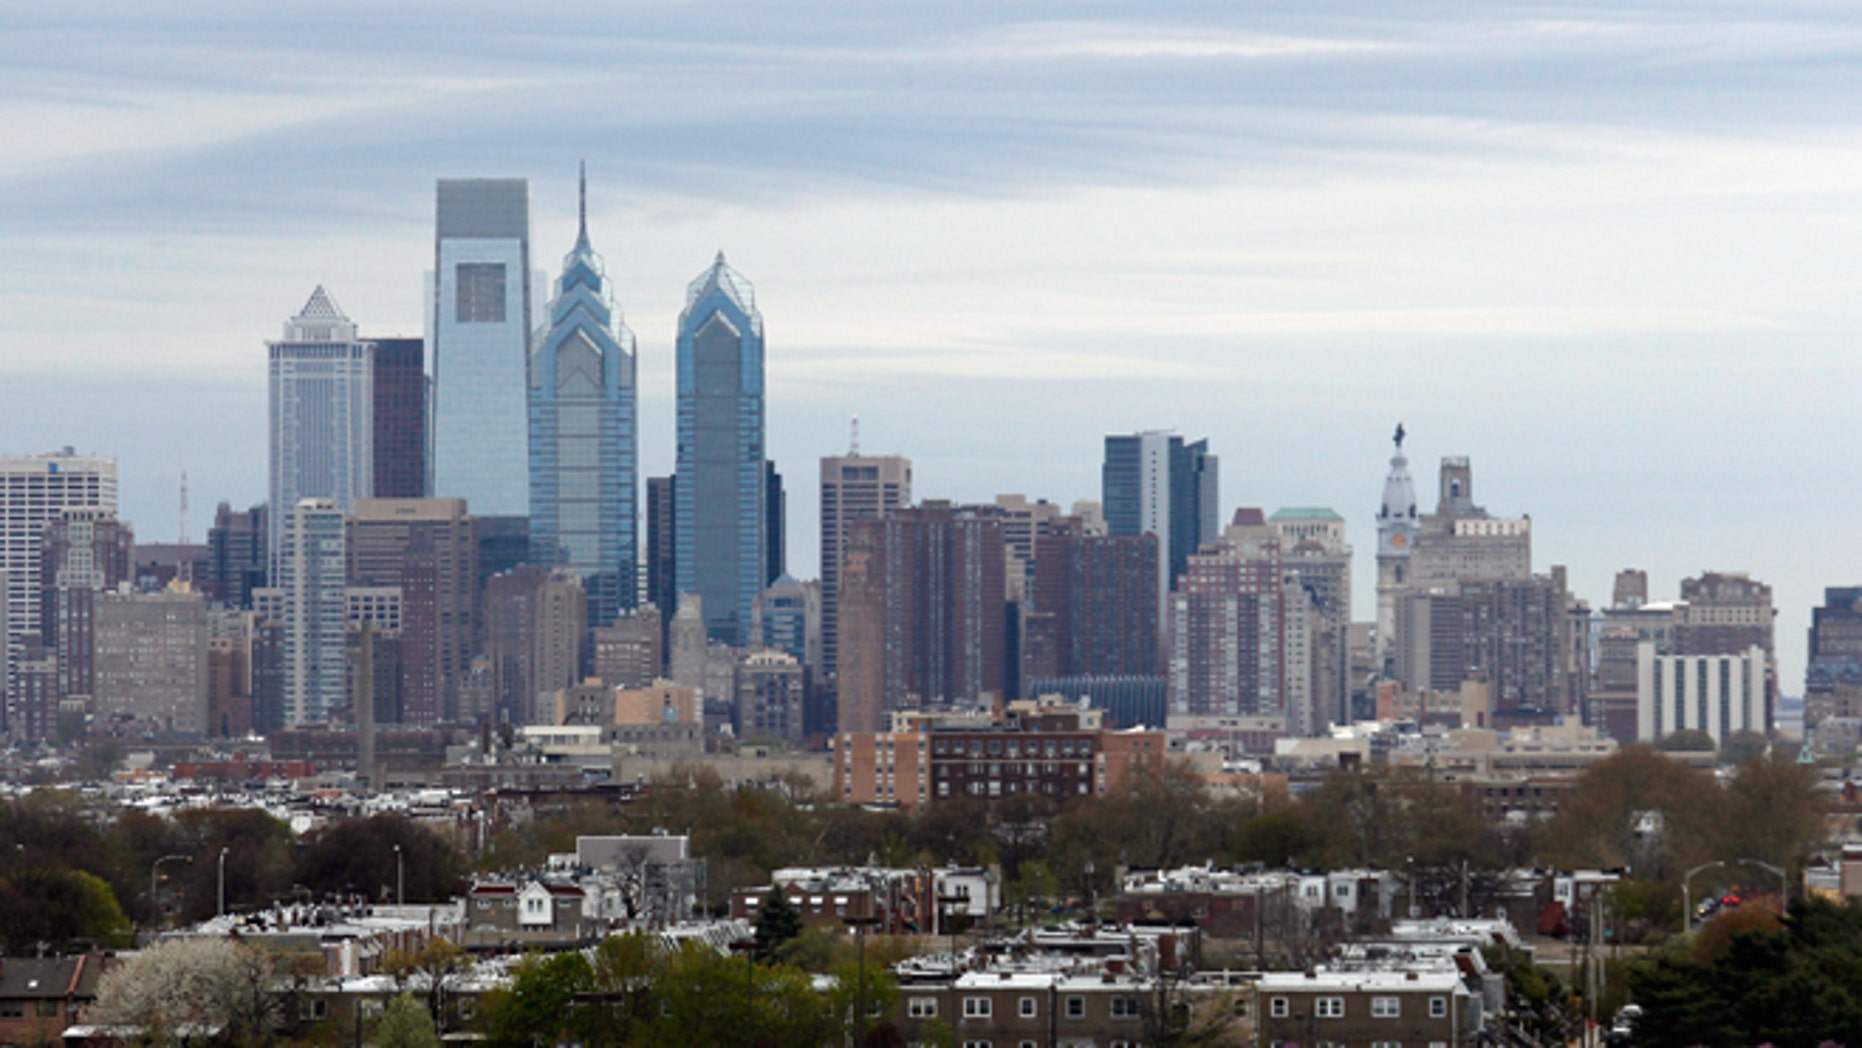 PHILADELPHIA, PA - APRIL 25: A general view of the Philadelphia city skyline prior to the game between the Philadelphia Flyers and the New York Rangers in Game Four of the First Round of the 2014 NHL Stanley Cup Playoffs at the Wells Fargo Center on April 25, 2014 in Philadelphia, Pennsylvania.  (Photo by Bruce Bennett/Getty Images)